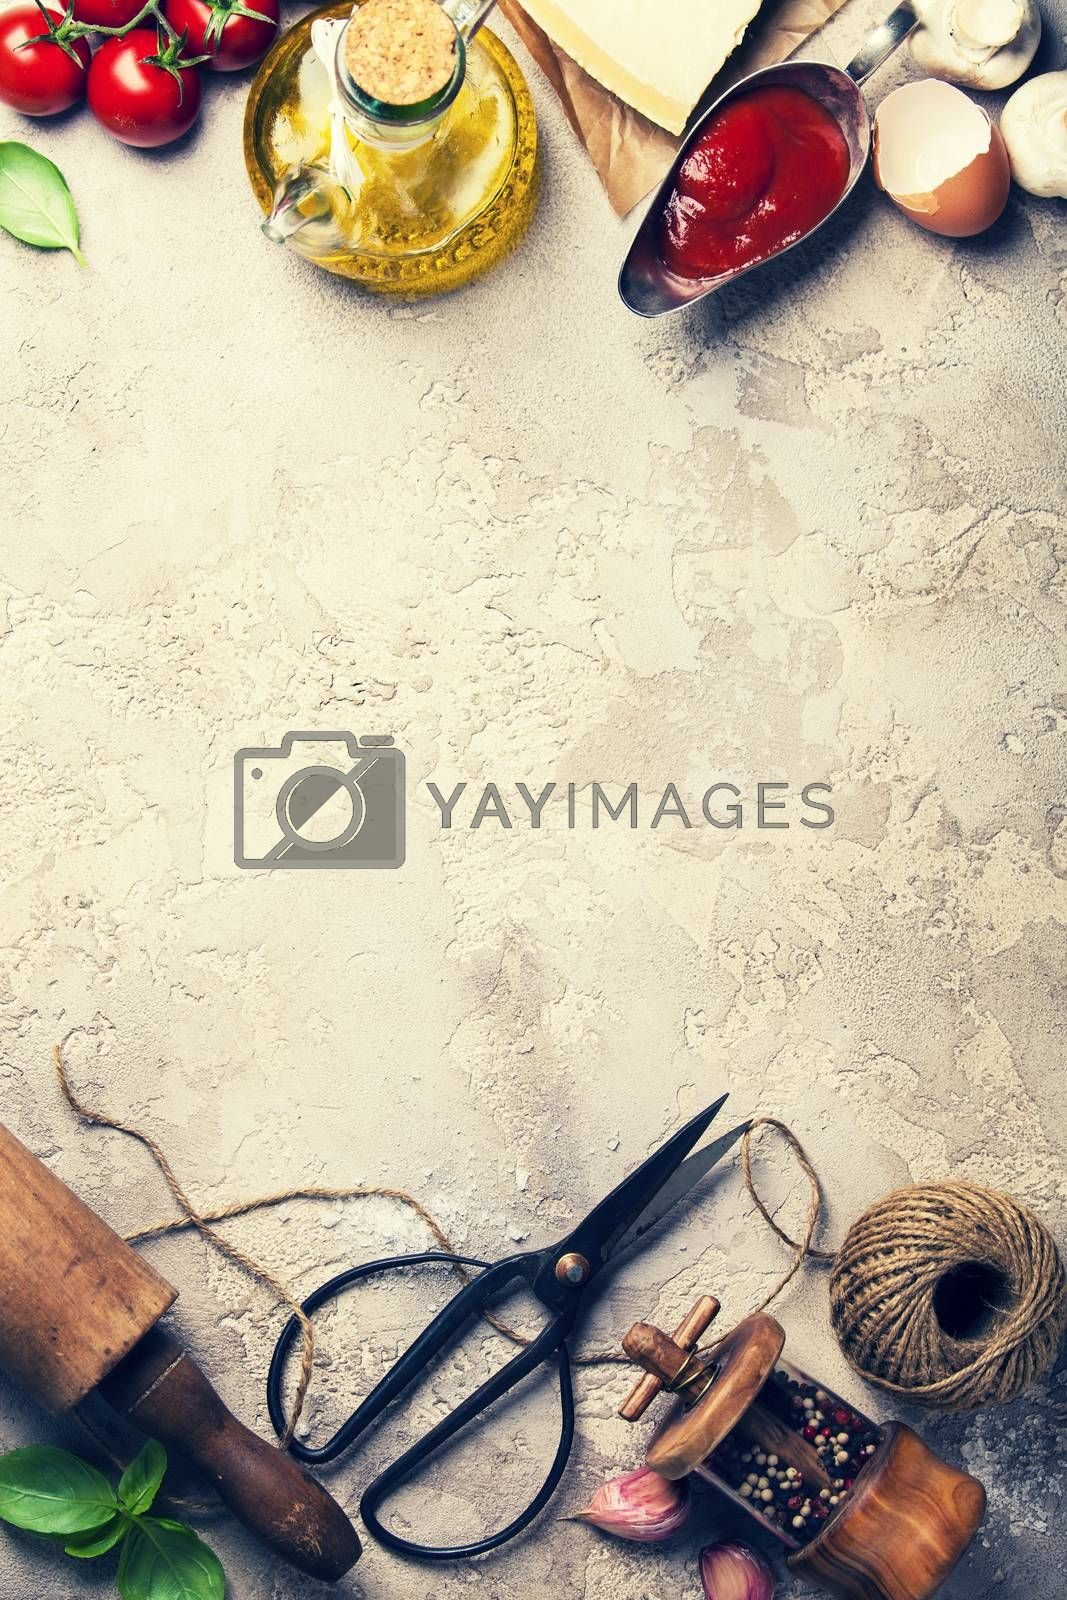 Cooking background: rolling pin, scissors, pepper, garlic, olive oil, eggs, cheese, tomato and basil leaves. Cooking, italian food  or vegetarian concept. Top view, copy space